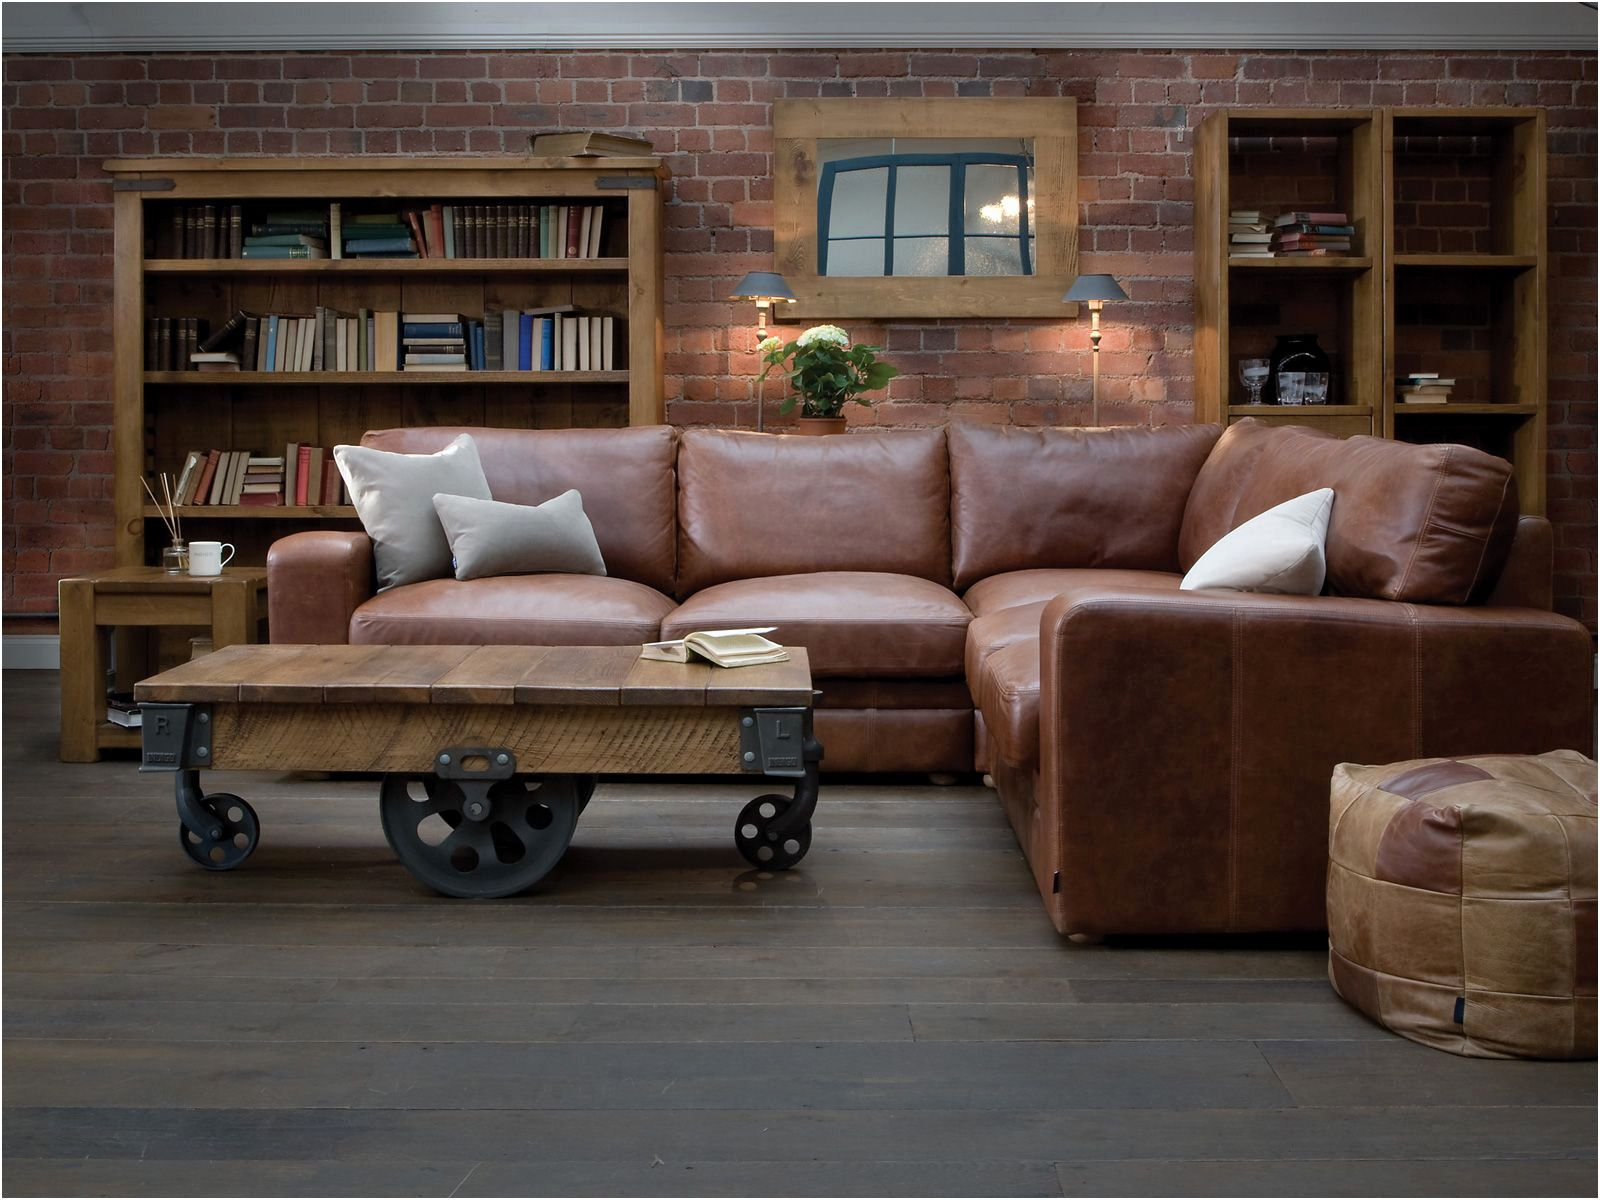 Exklusiv Antik Leder Couch | Leather corner sofa, Leather sofa, Brown leather sofa